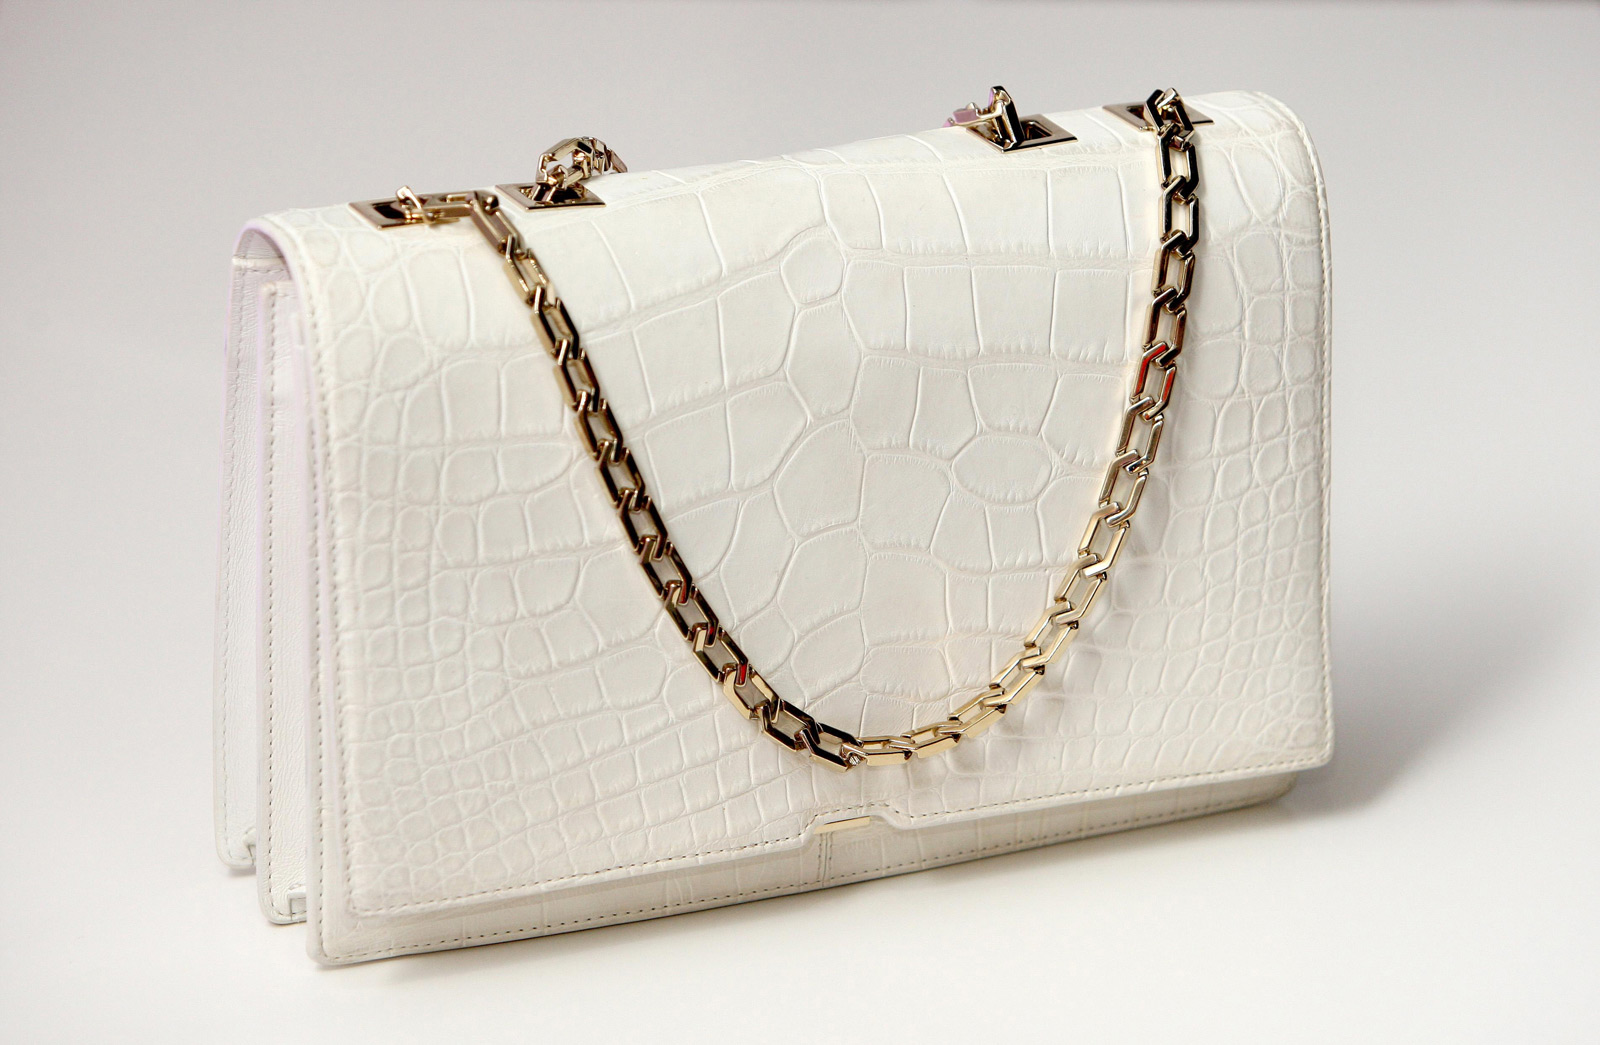 Victoria Beckham's Luxury Handbag For Selfridges - eXtravaganzi